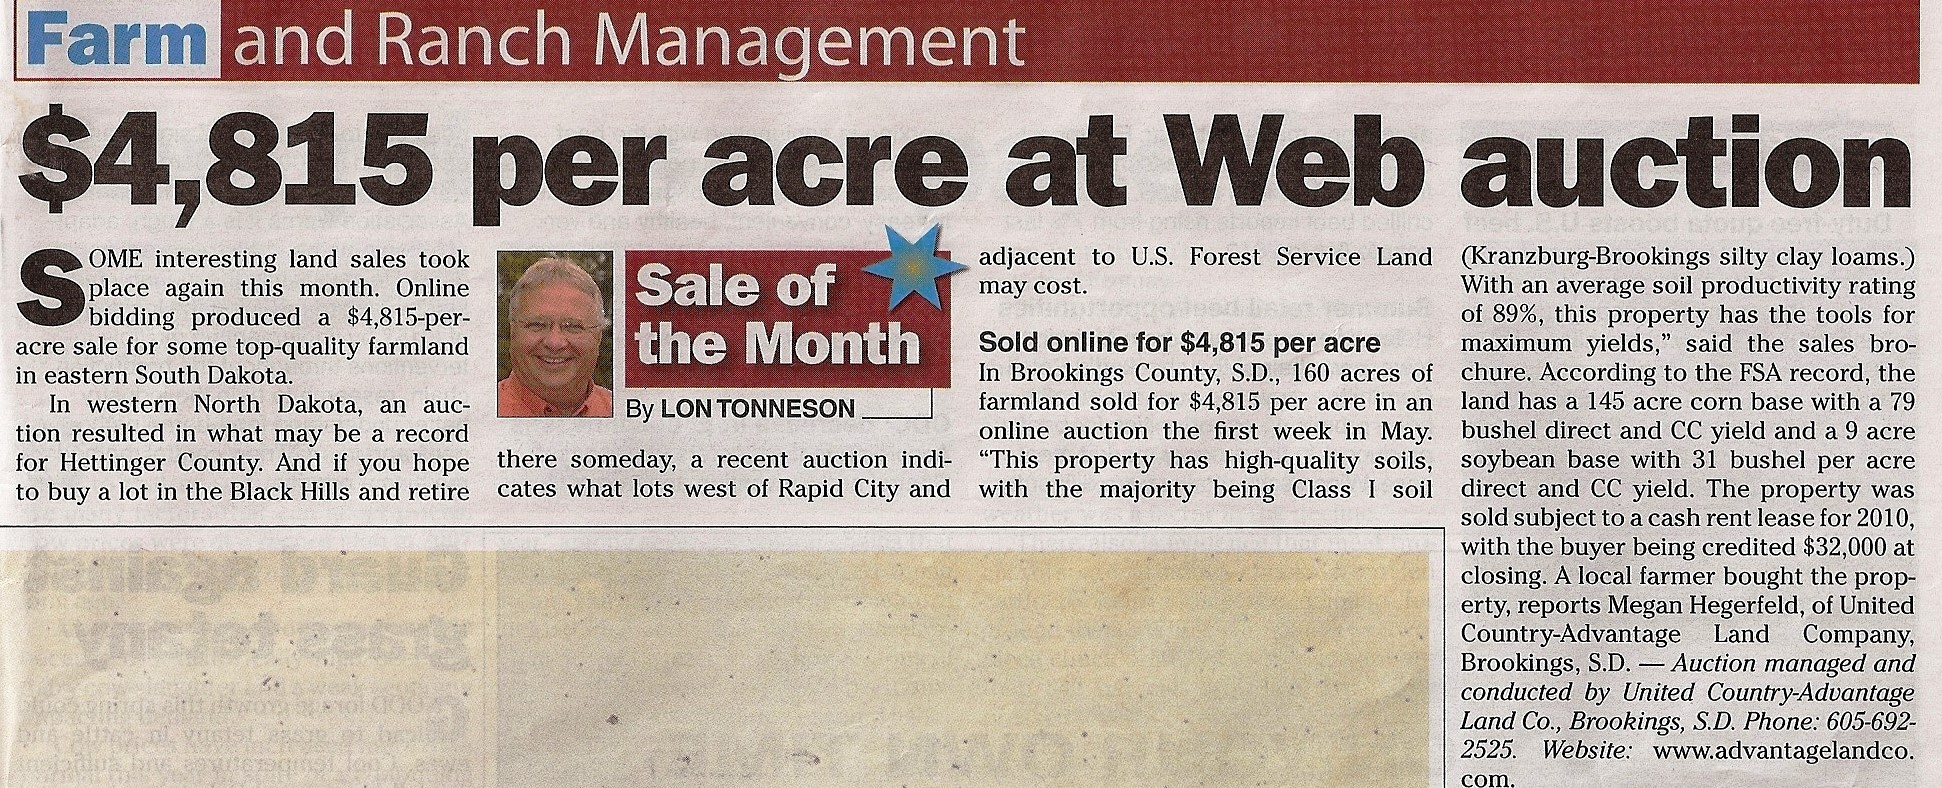 newspaper article featuring land purchased through advantage land